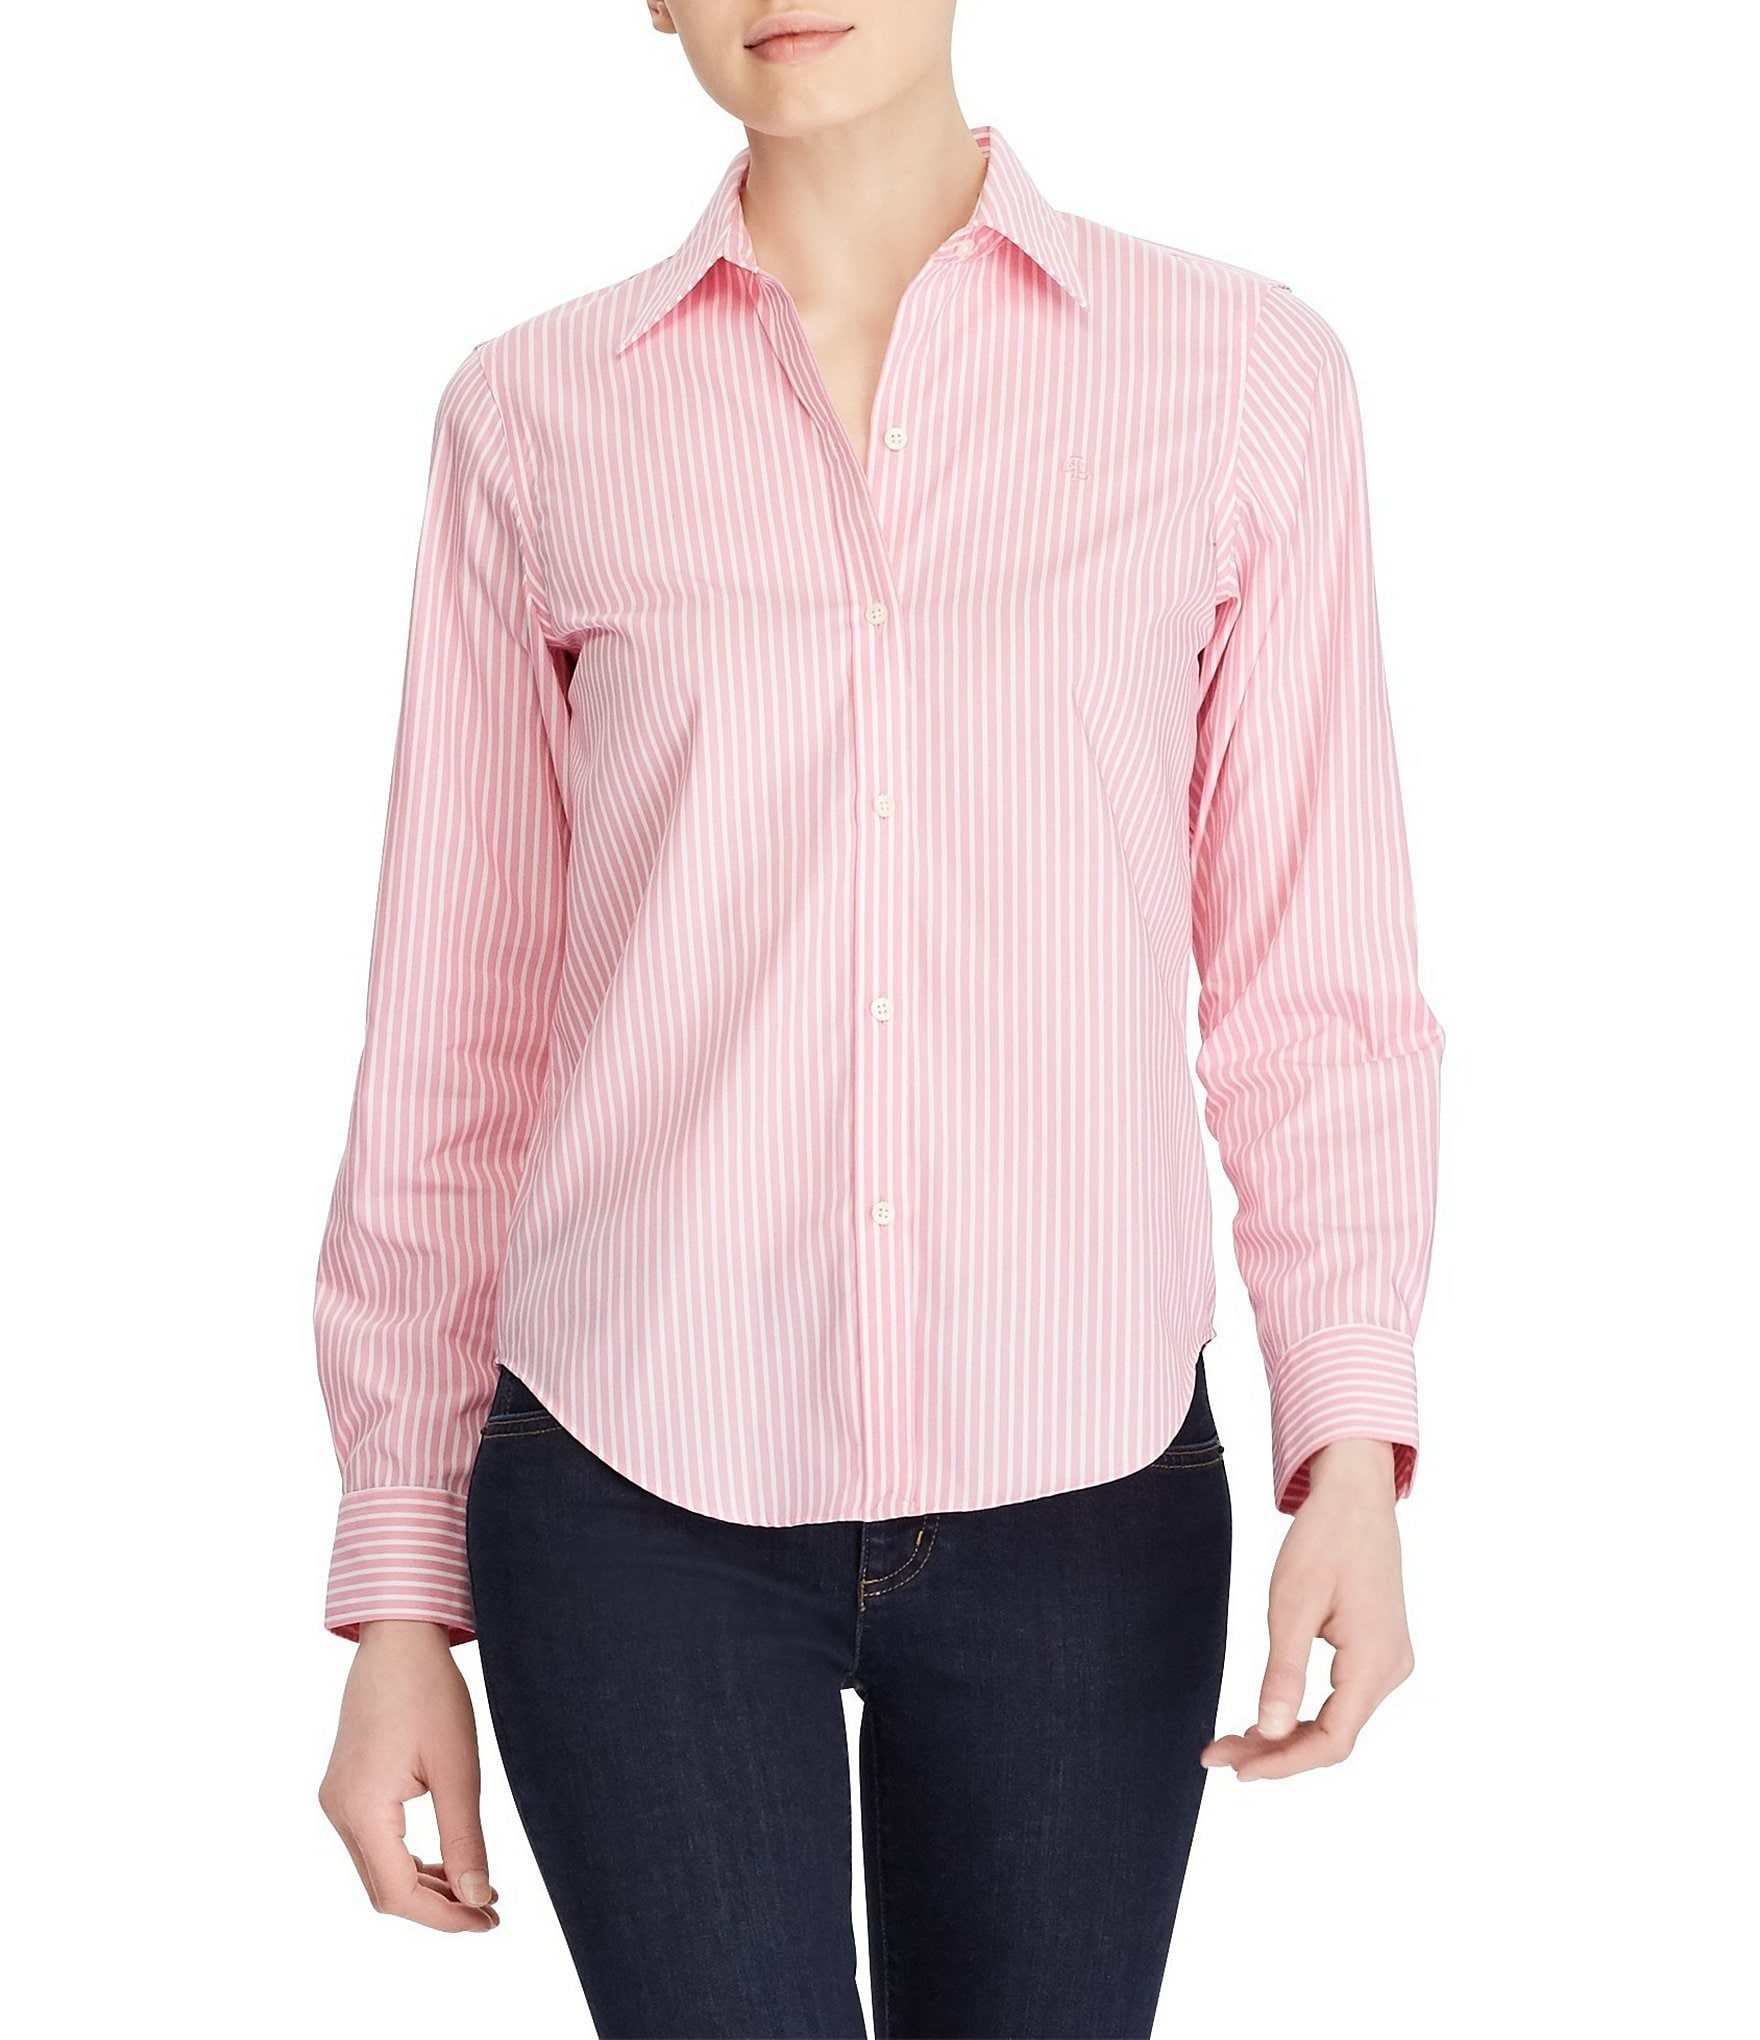 Lauren ralph lauren wrinkle free striped dress shirt for Best wrinkle free dress shirts